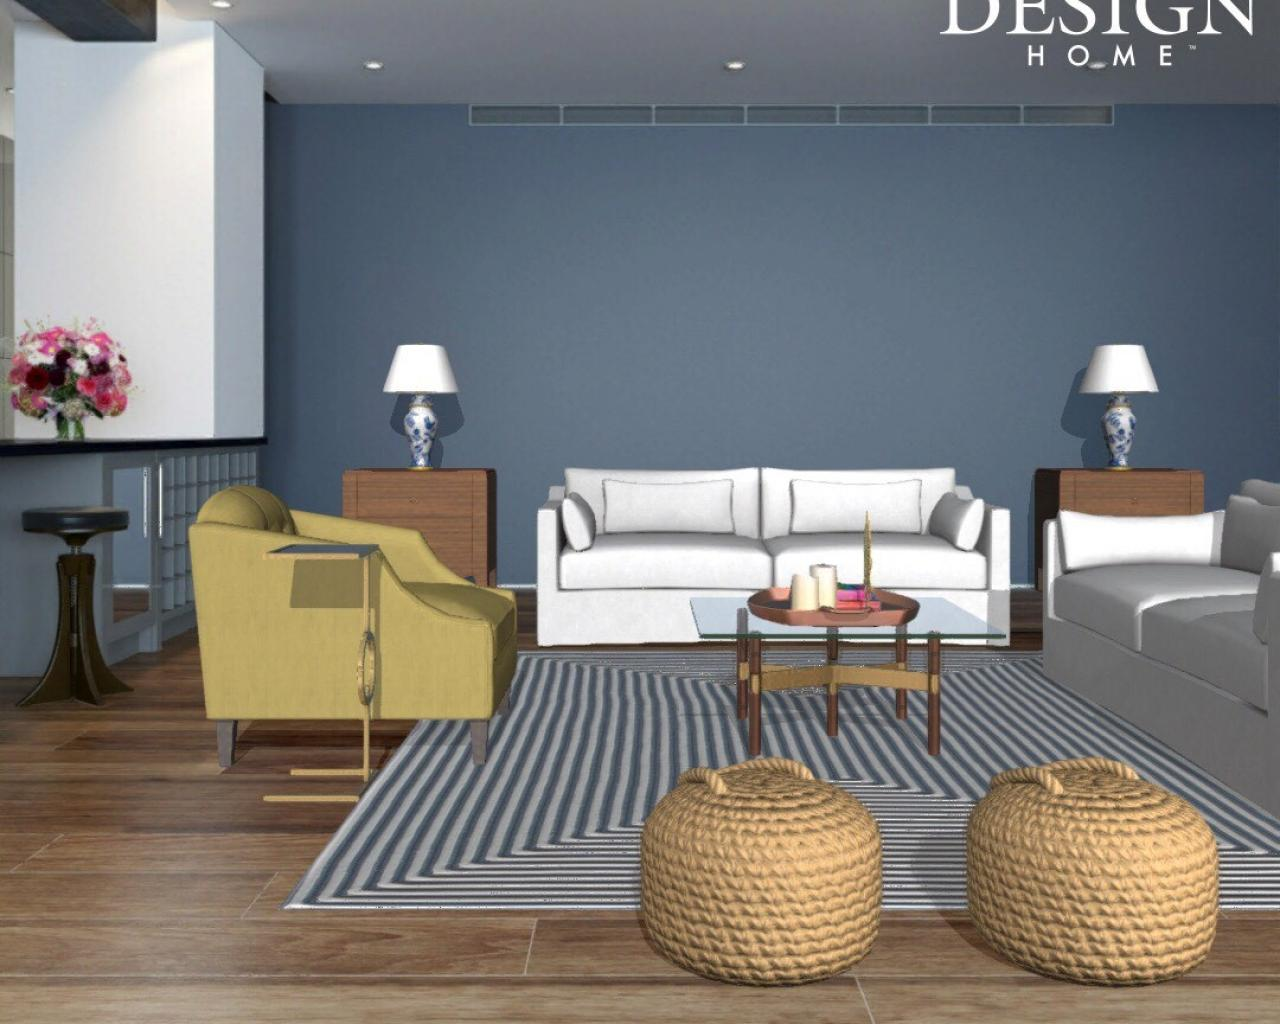 Be an interior designer with design home app hgtv 39 s for Home style interior design apk